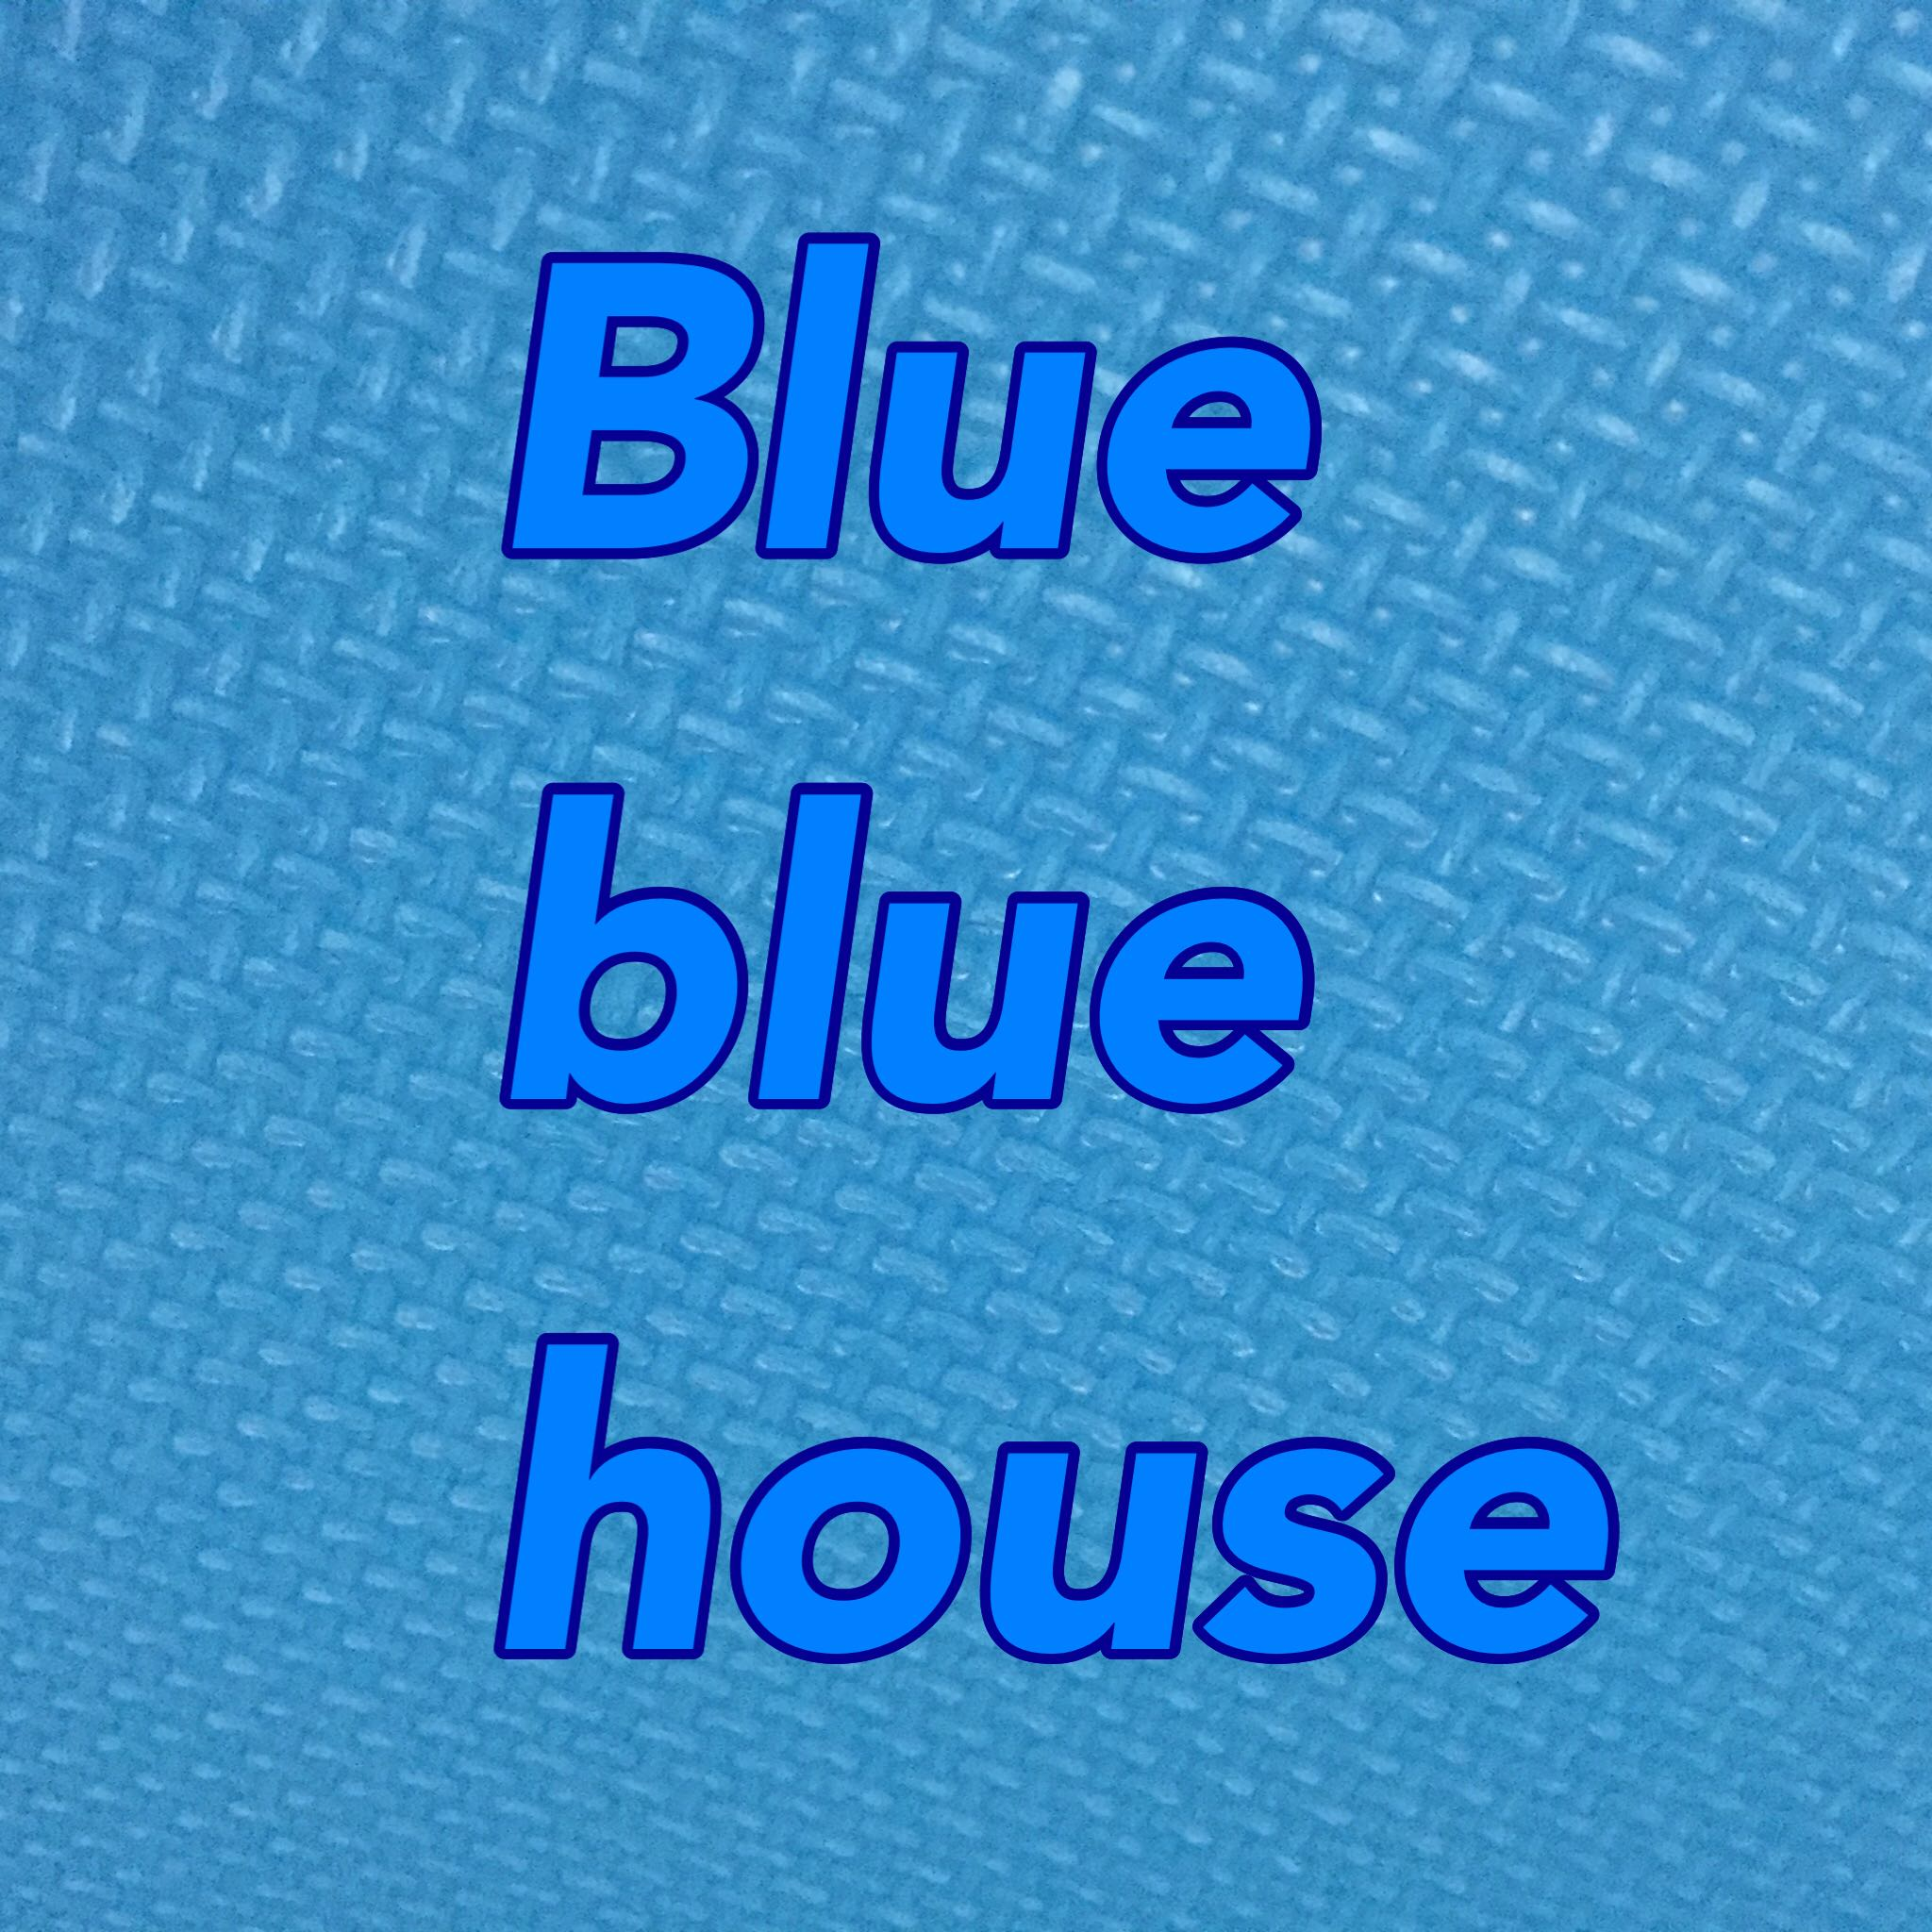 bluebluehouse